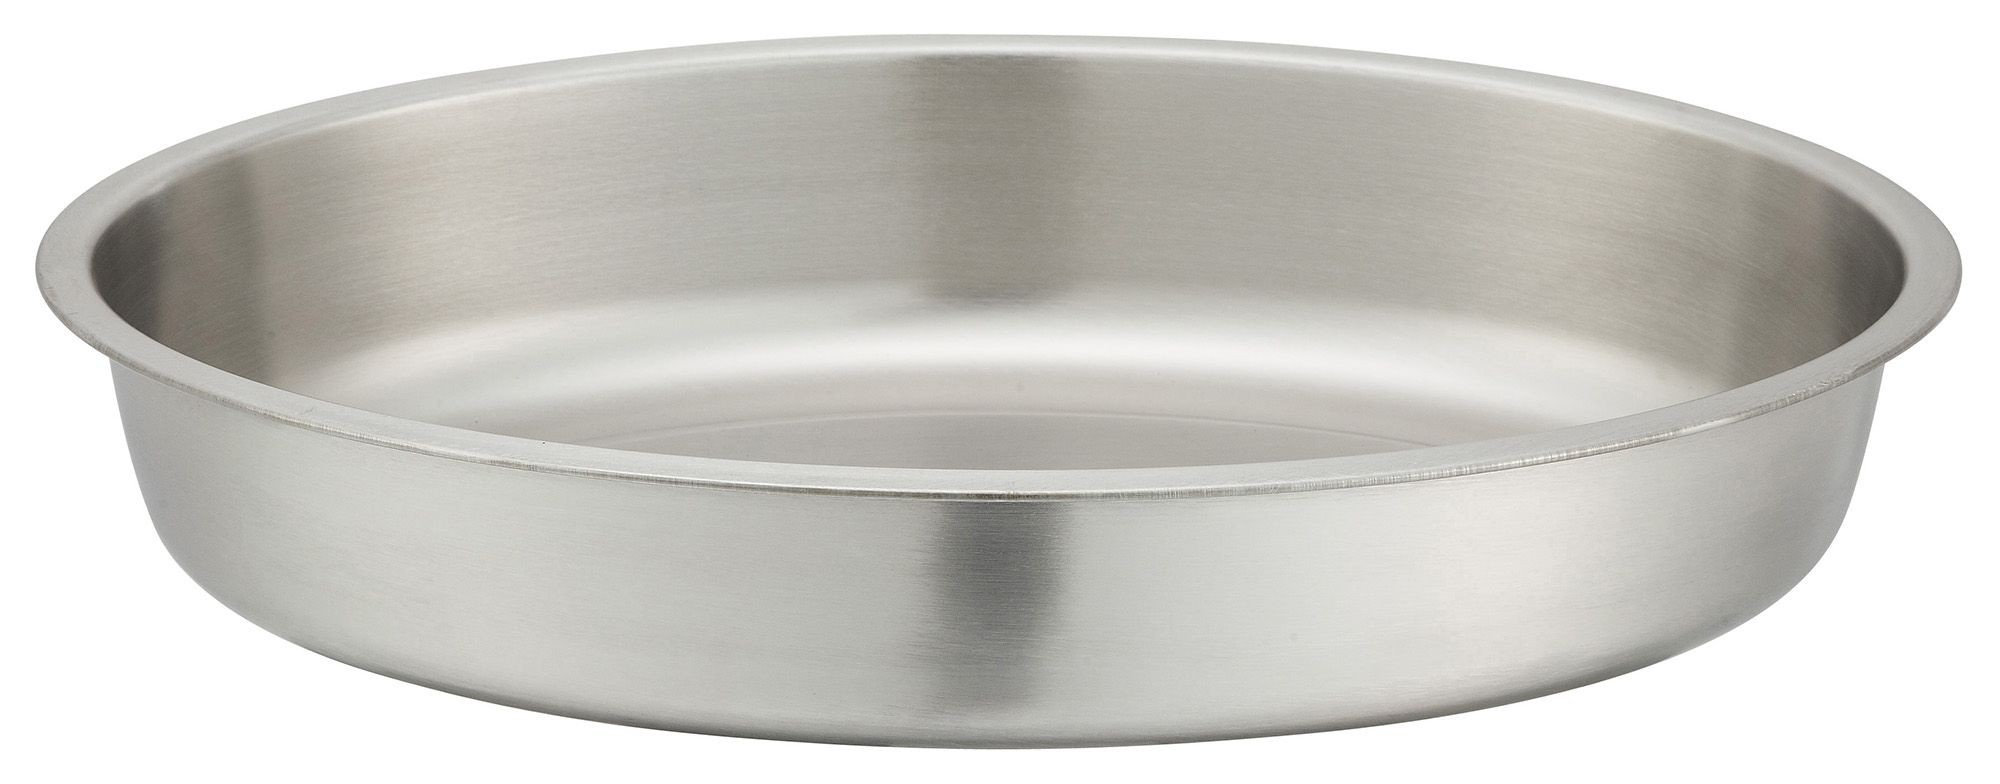 Water Pan for 6 Qt Gold-Accented Malibu Oval Chafer 202